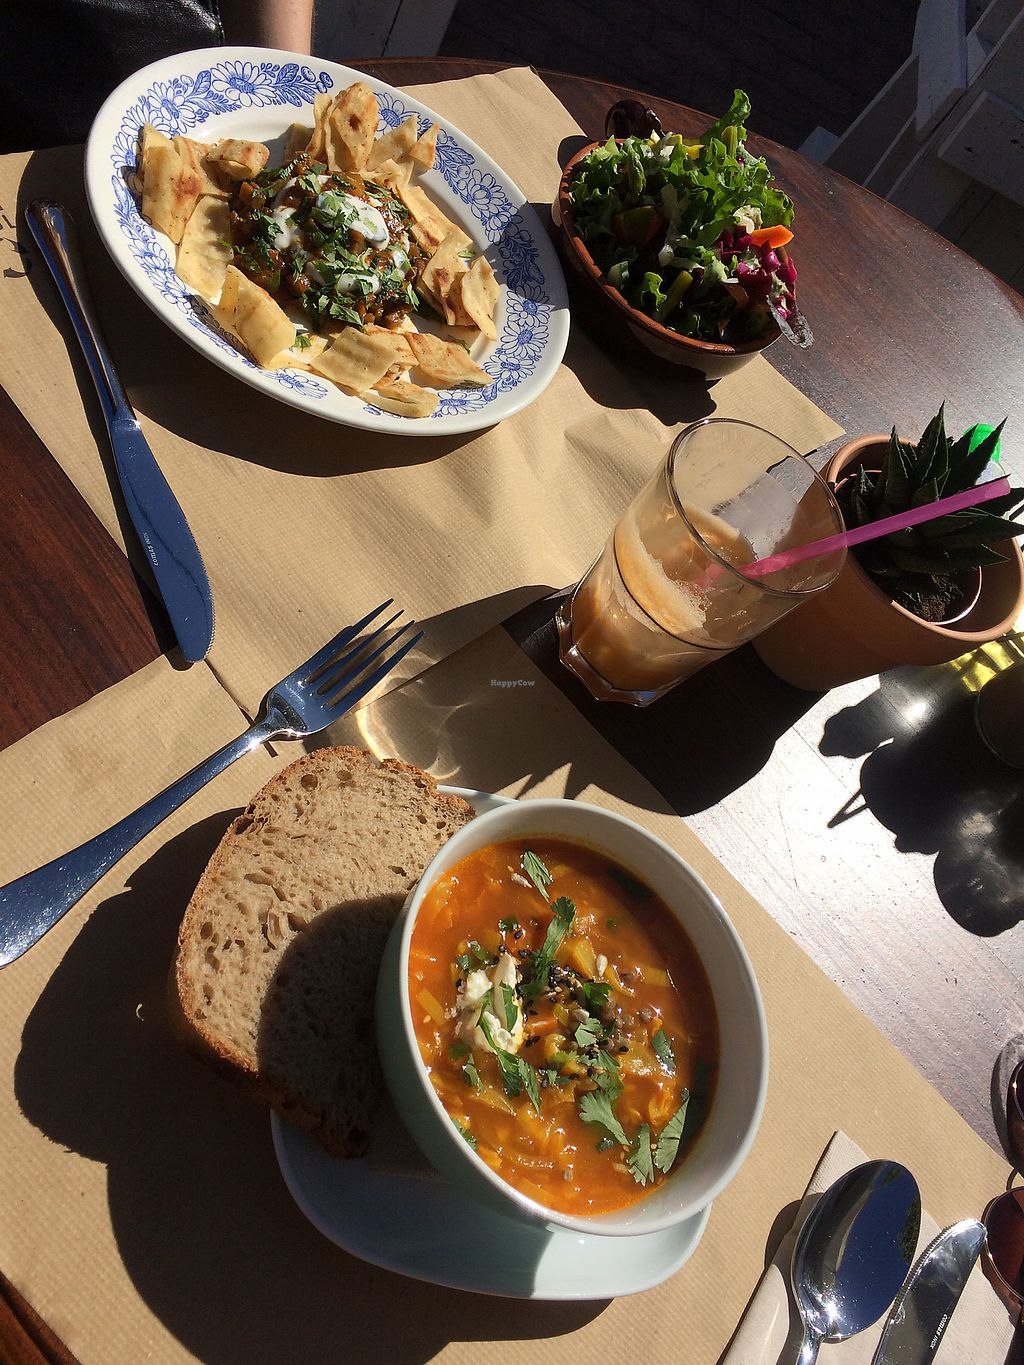 "Photo of Bistro Arbol  by <a href=""/members/profile/EvaDelagrange"">EvaDelagrange</a> <br/>Luch vegan  <br/> March 29, 2018  - <a href='/contact/abuse/image/97212/377714'>Report</a>"